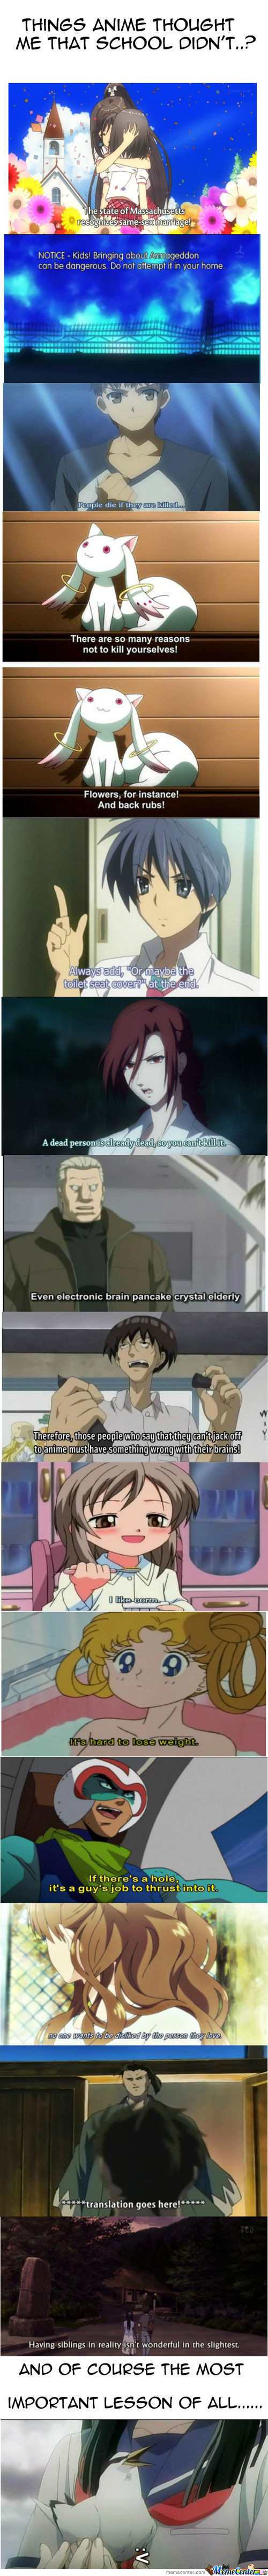 Anime : Perhaps The Best Teacher You Will Ever Have...